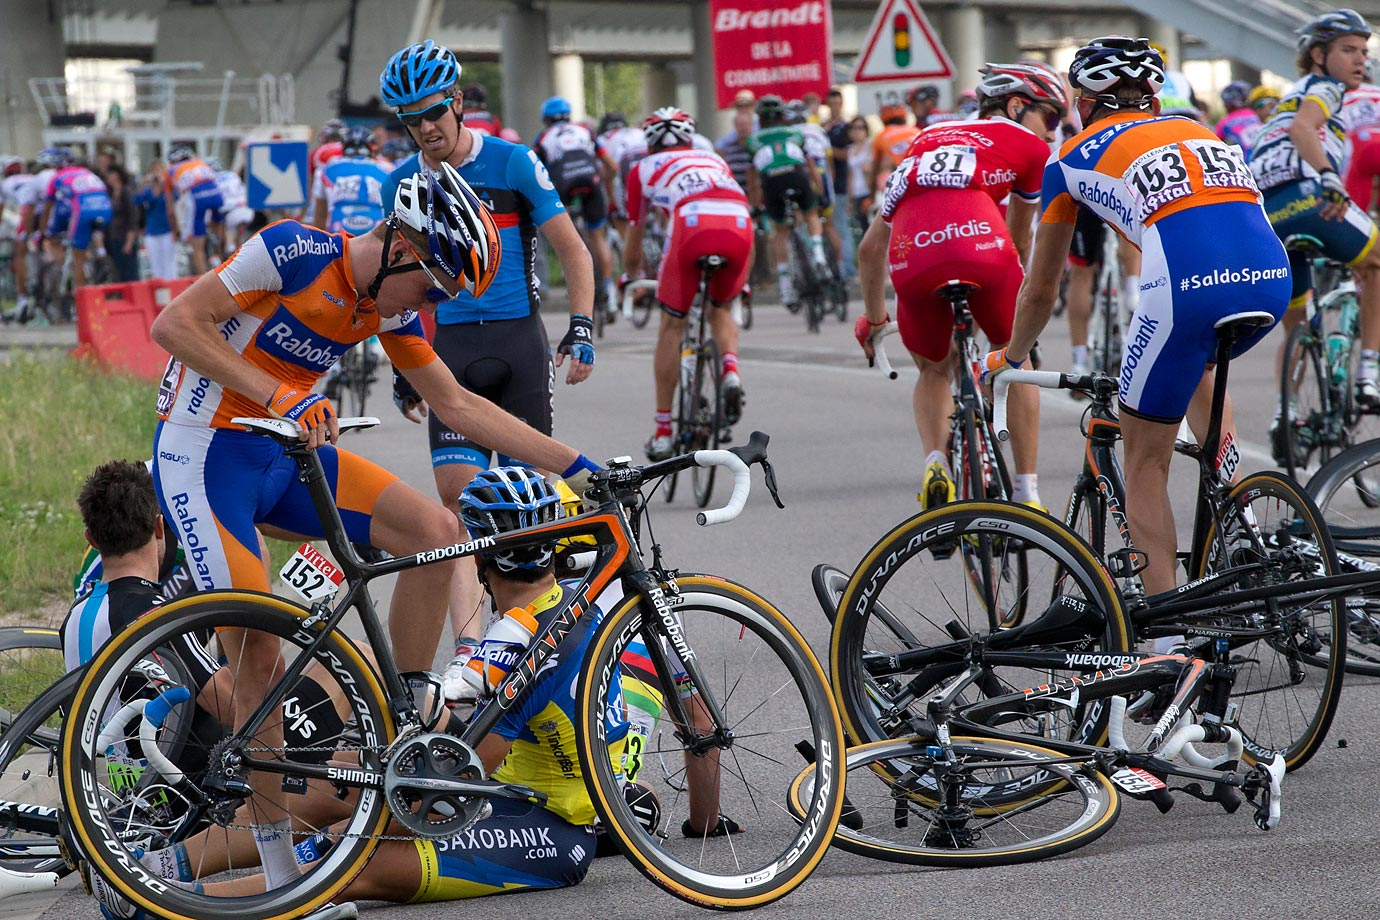 Riders are pictured after they crashed in the 214,5 km and fourth stage of the 2012 Tour de France cycling race starting in Abbeville and finishing in Rouen, northwestern France, on July 4, 2012.